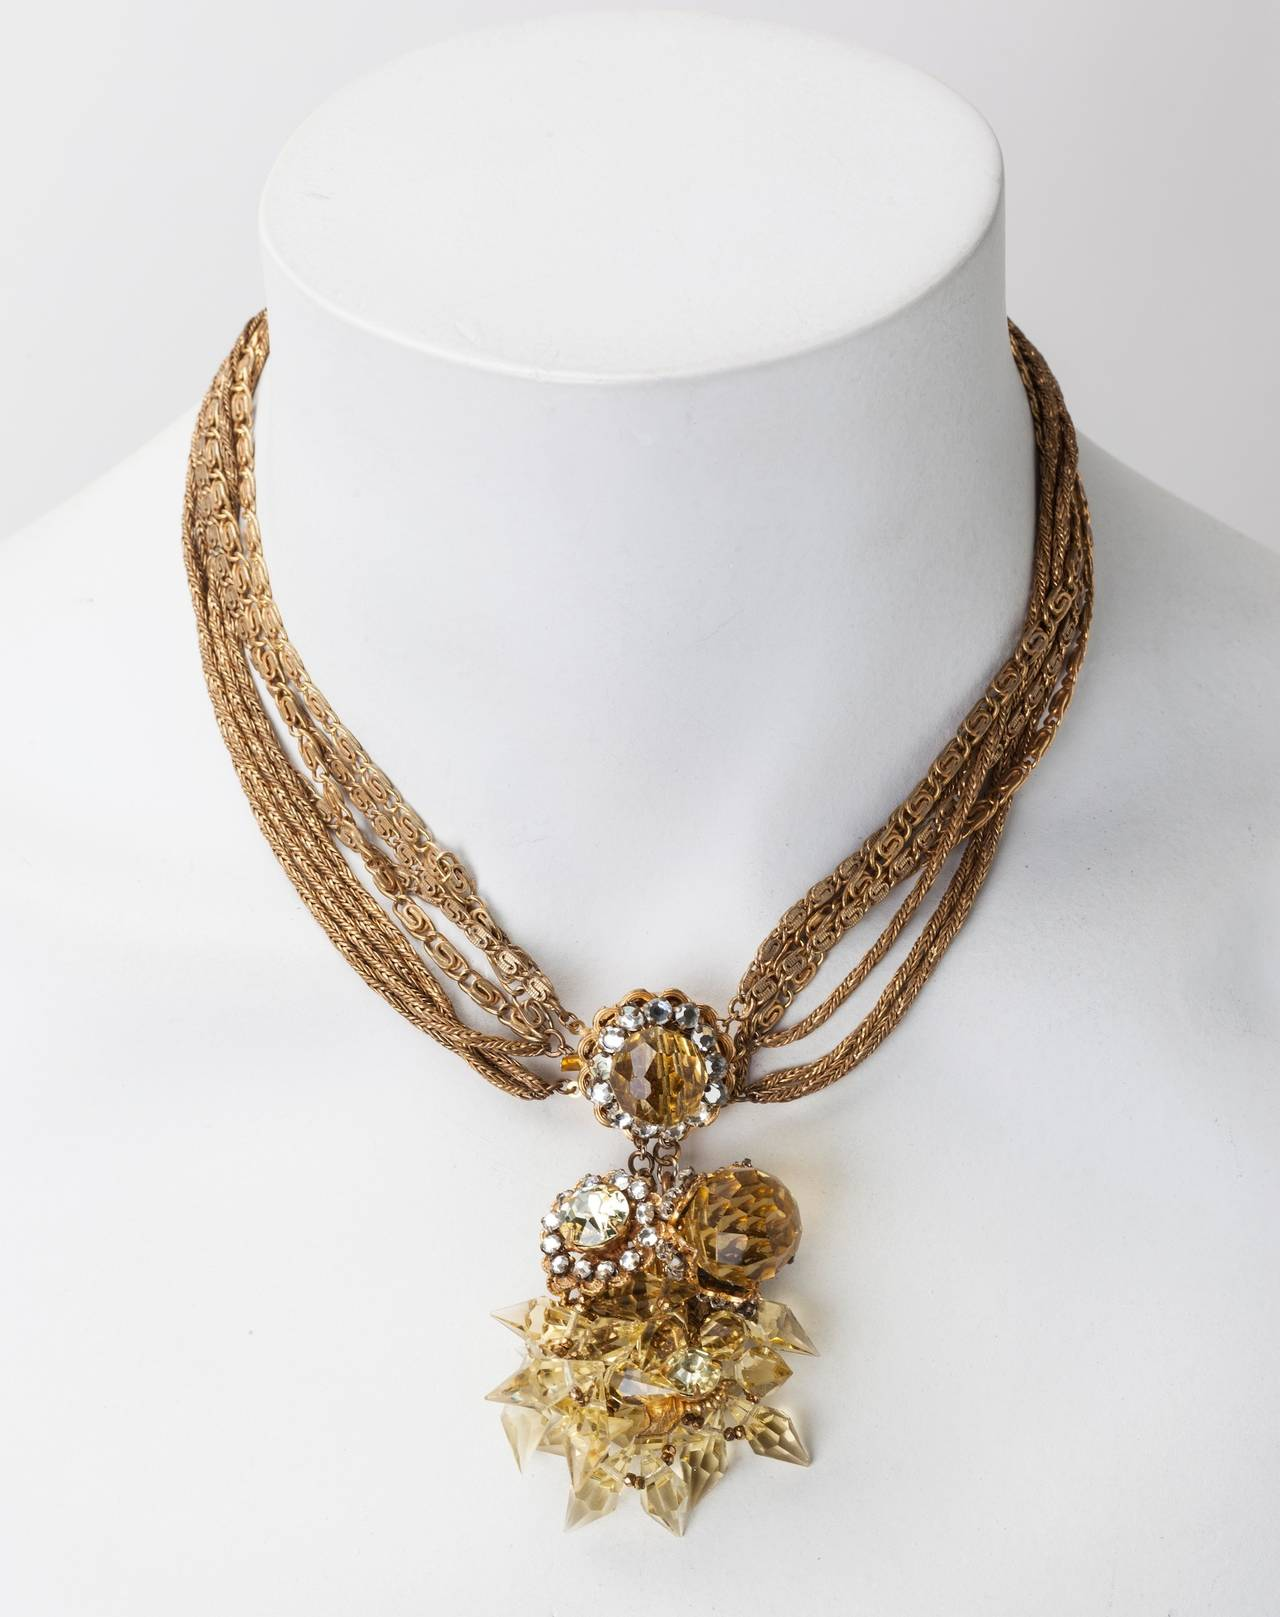 Miriam Haskell signature Russian Gilt, multi strand chain necklace with large central pendant clasp of faceted faux citrine round and pointed crystals. The clasp is further embellished with hand sewn crystal rose montes, and tiny gold cut steel